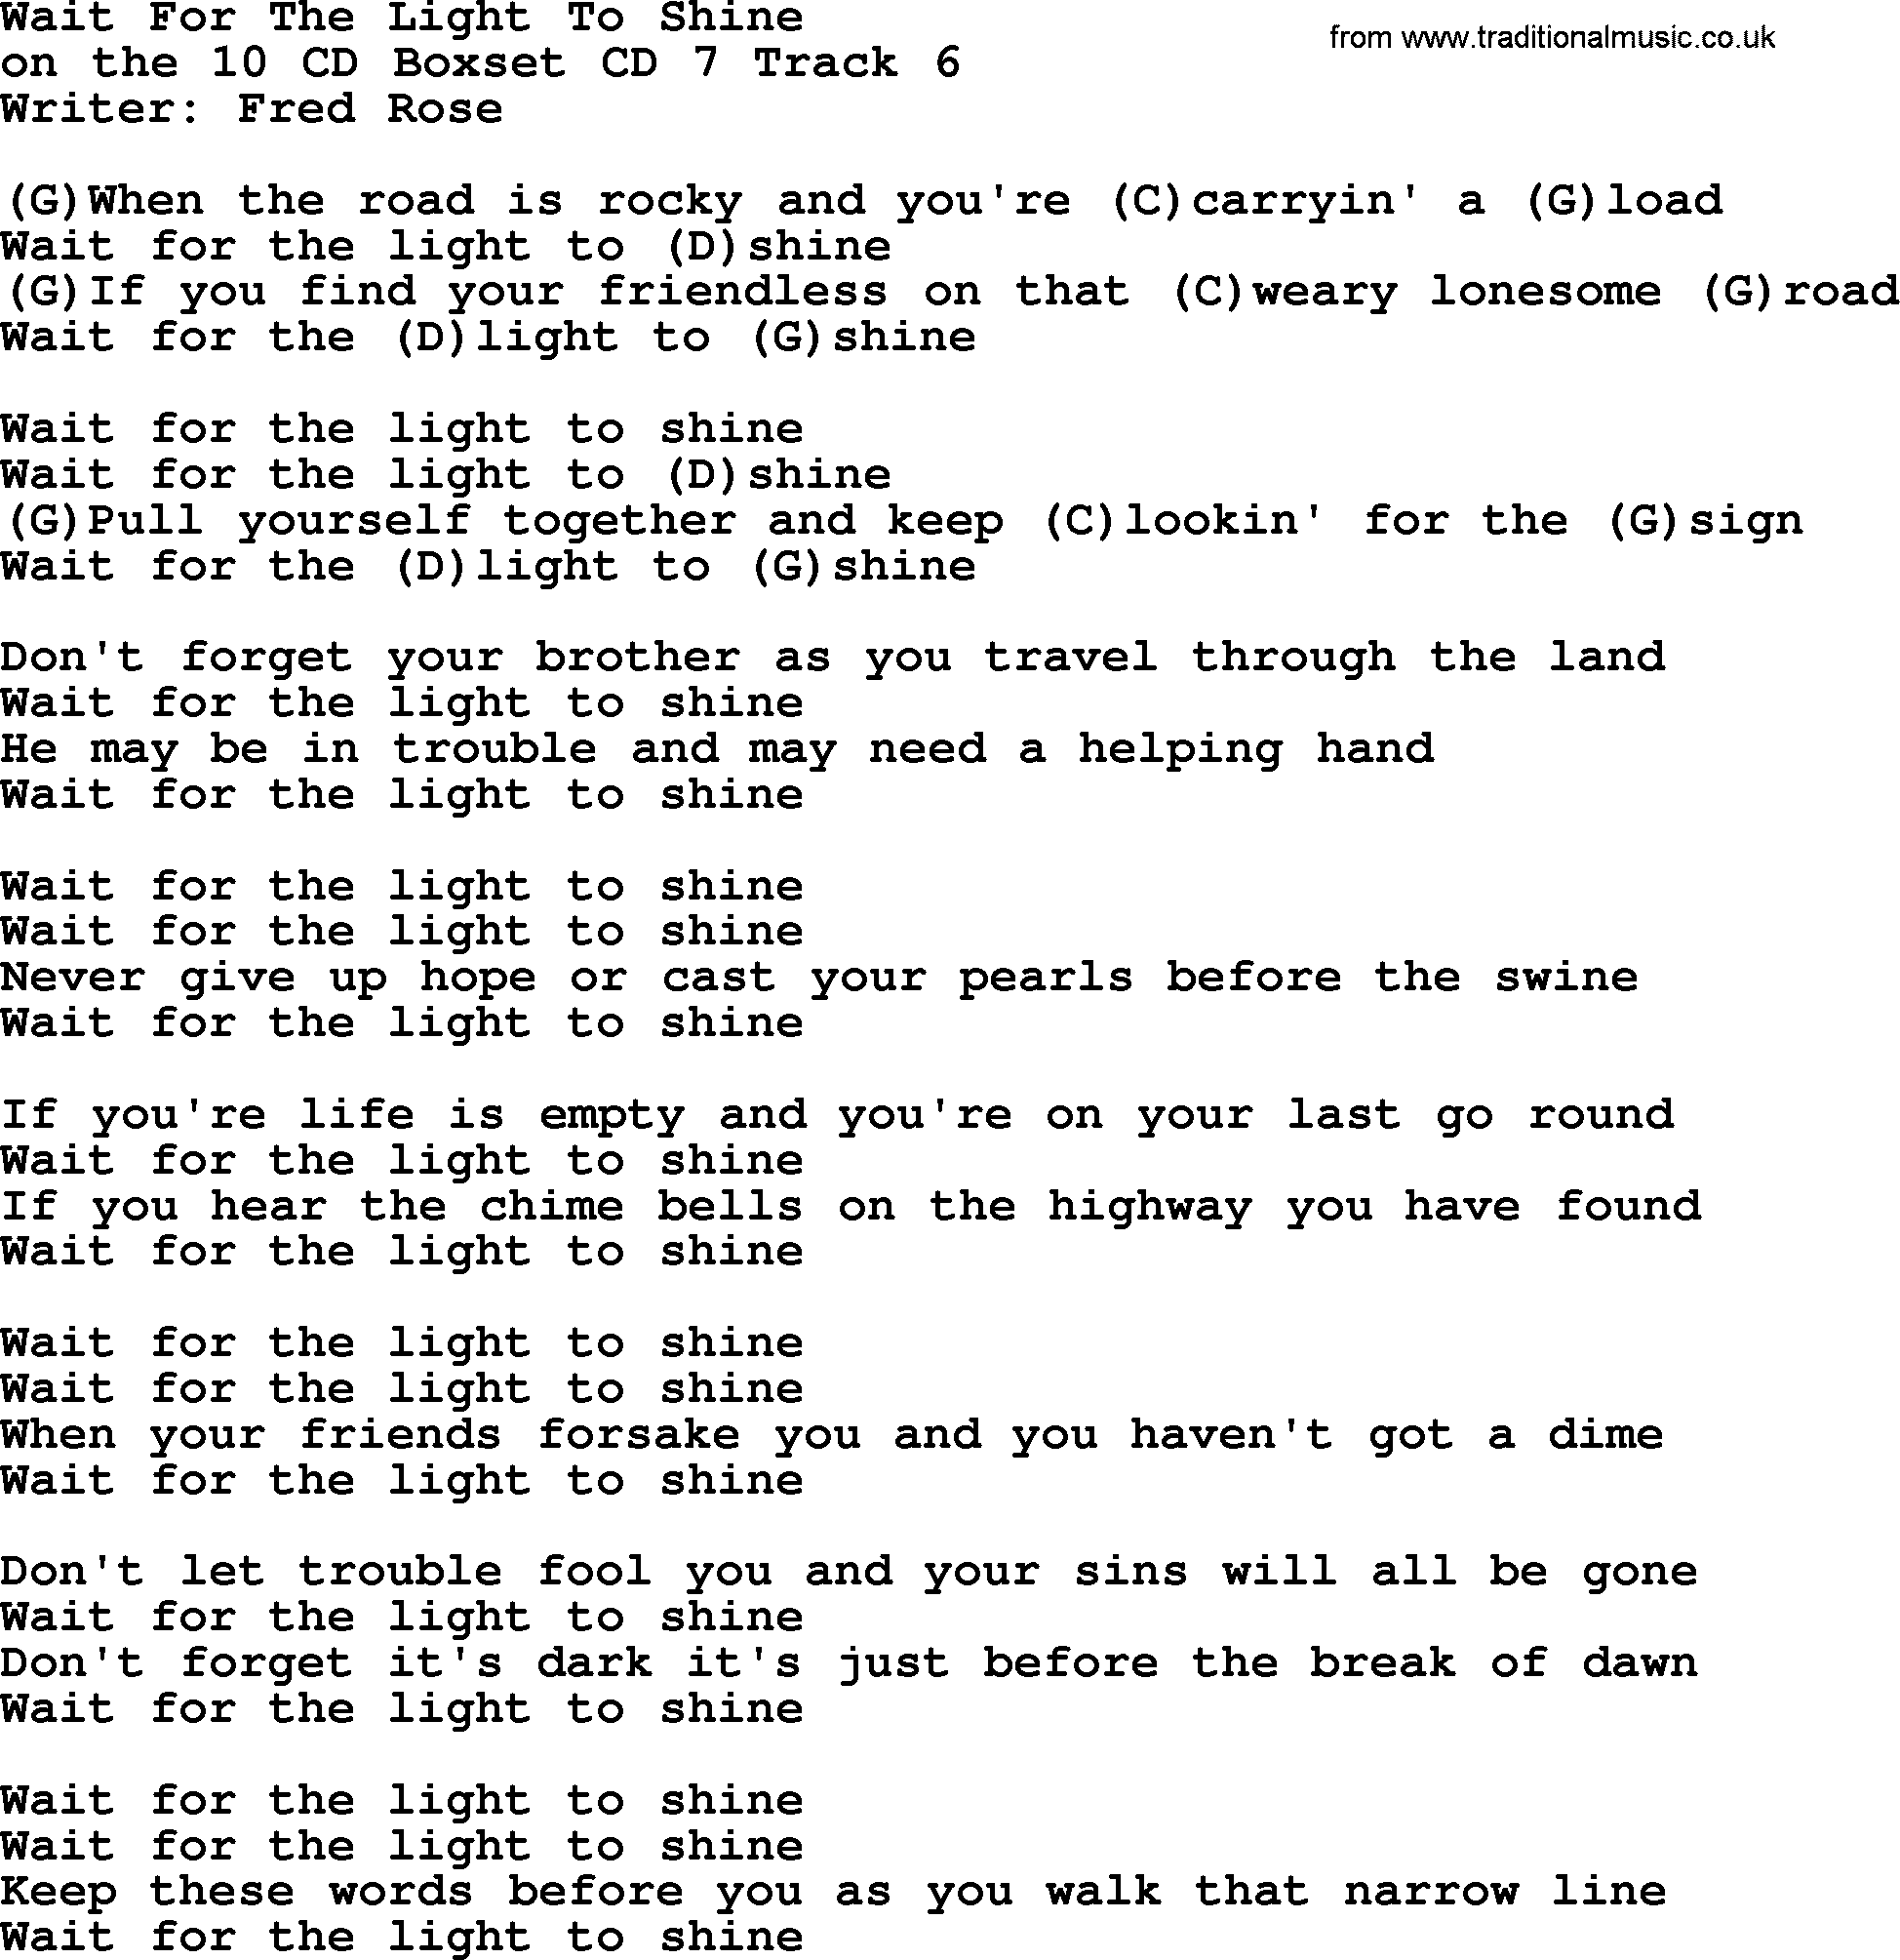 Hank williams song wait for the light to shine lyrics and chords hank williams song wait for the light to shine lyrics and chords hexwebz Gallery